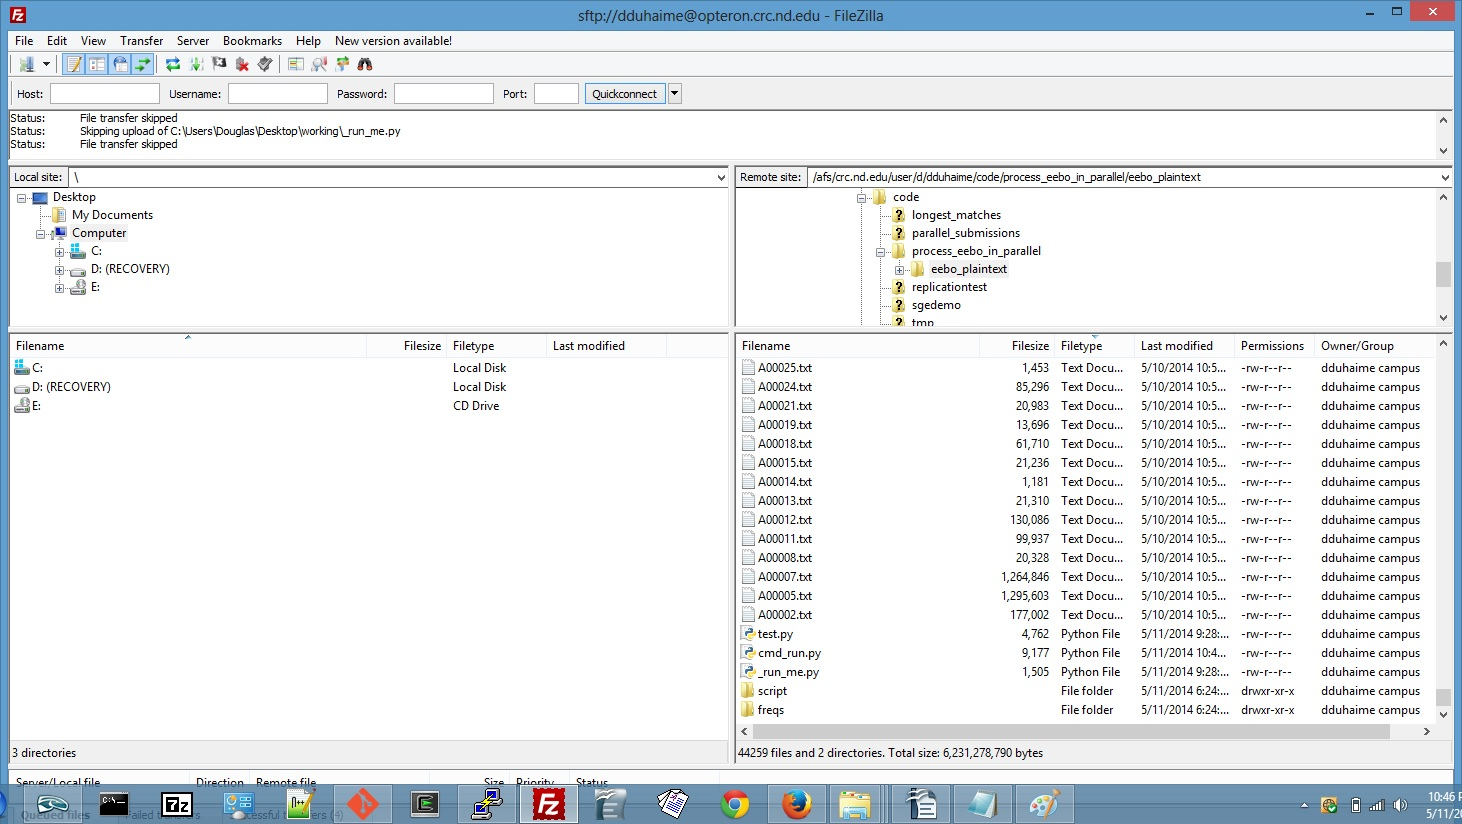 Screenshot showing all files required for batch processing on SGE.